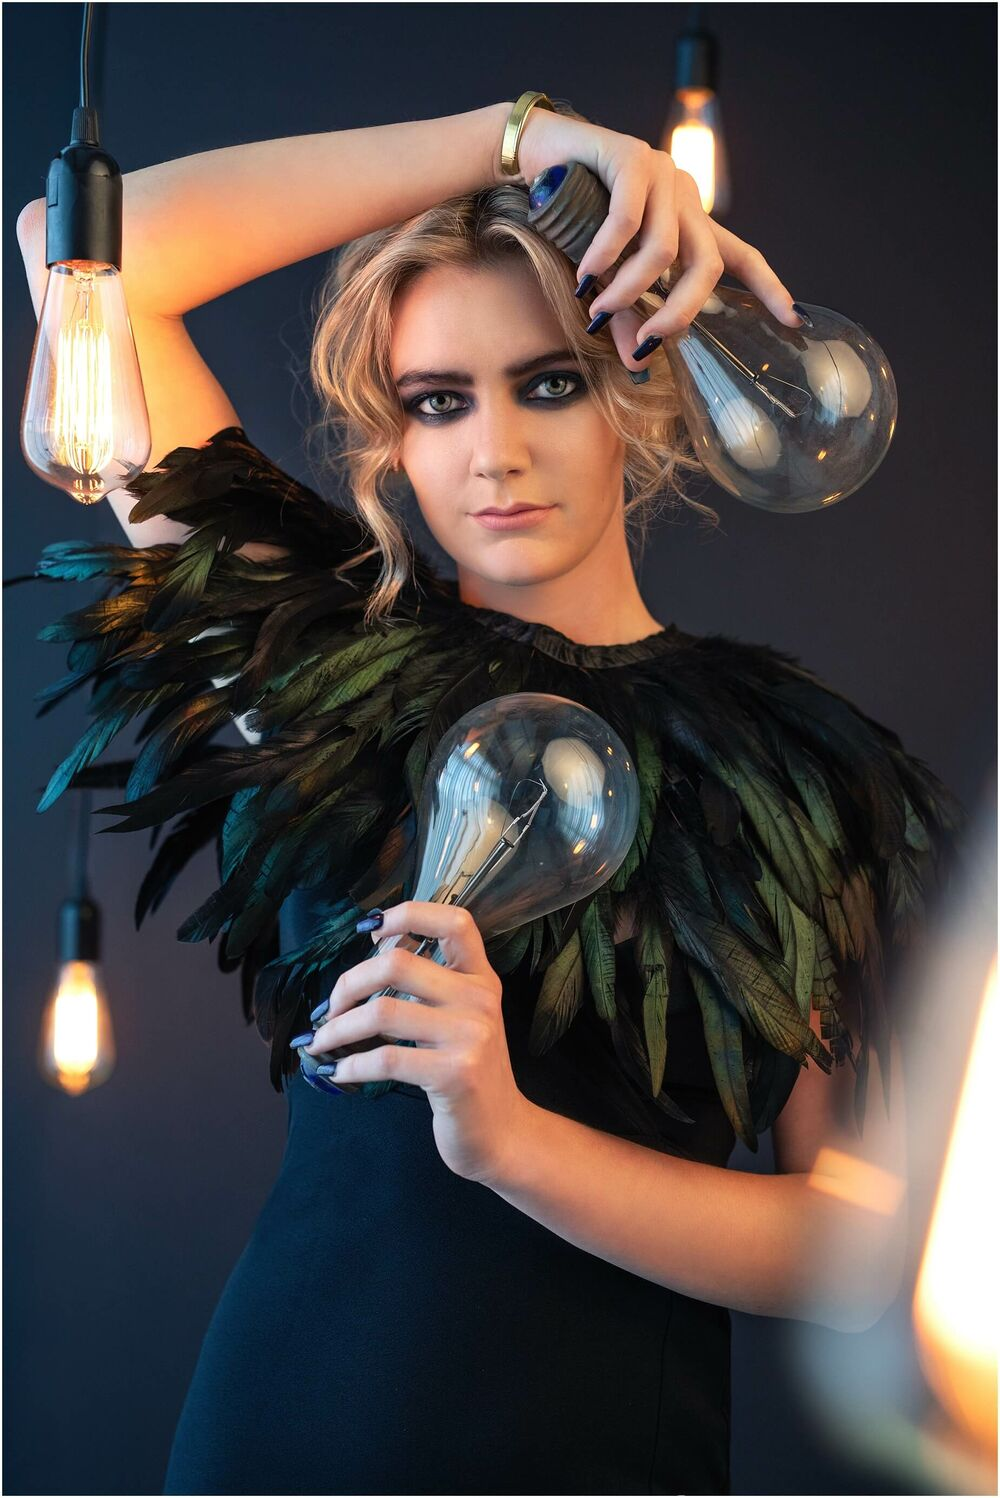 fashion portrait of beautiful girl in black feathers surrounded by vintage lightbulbs